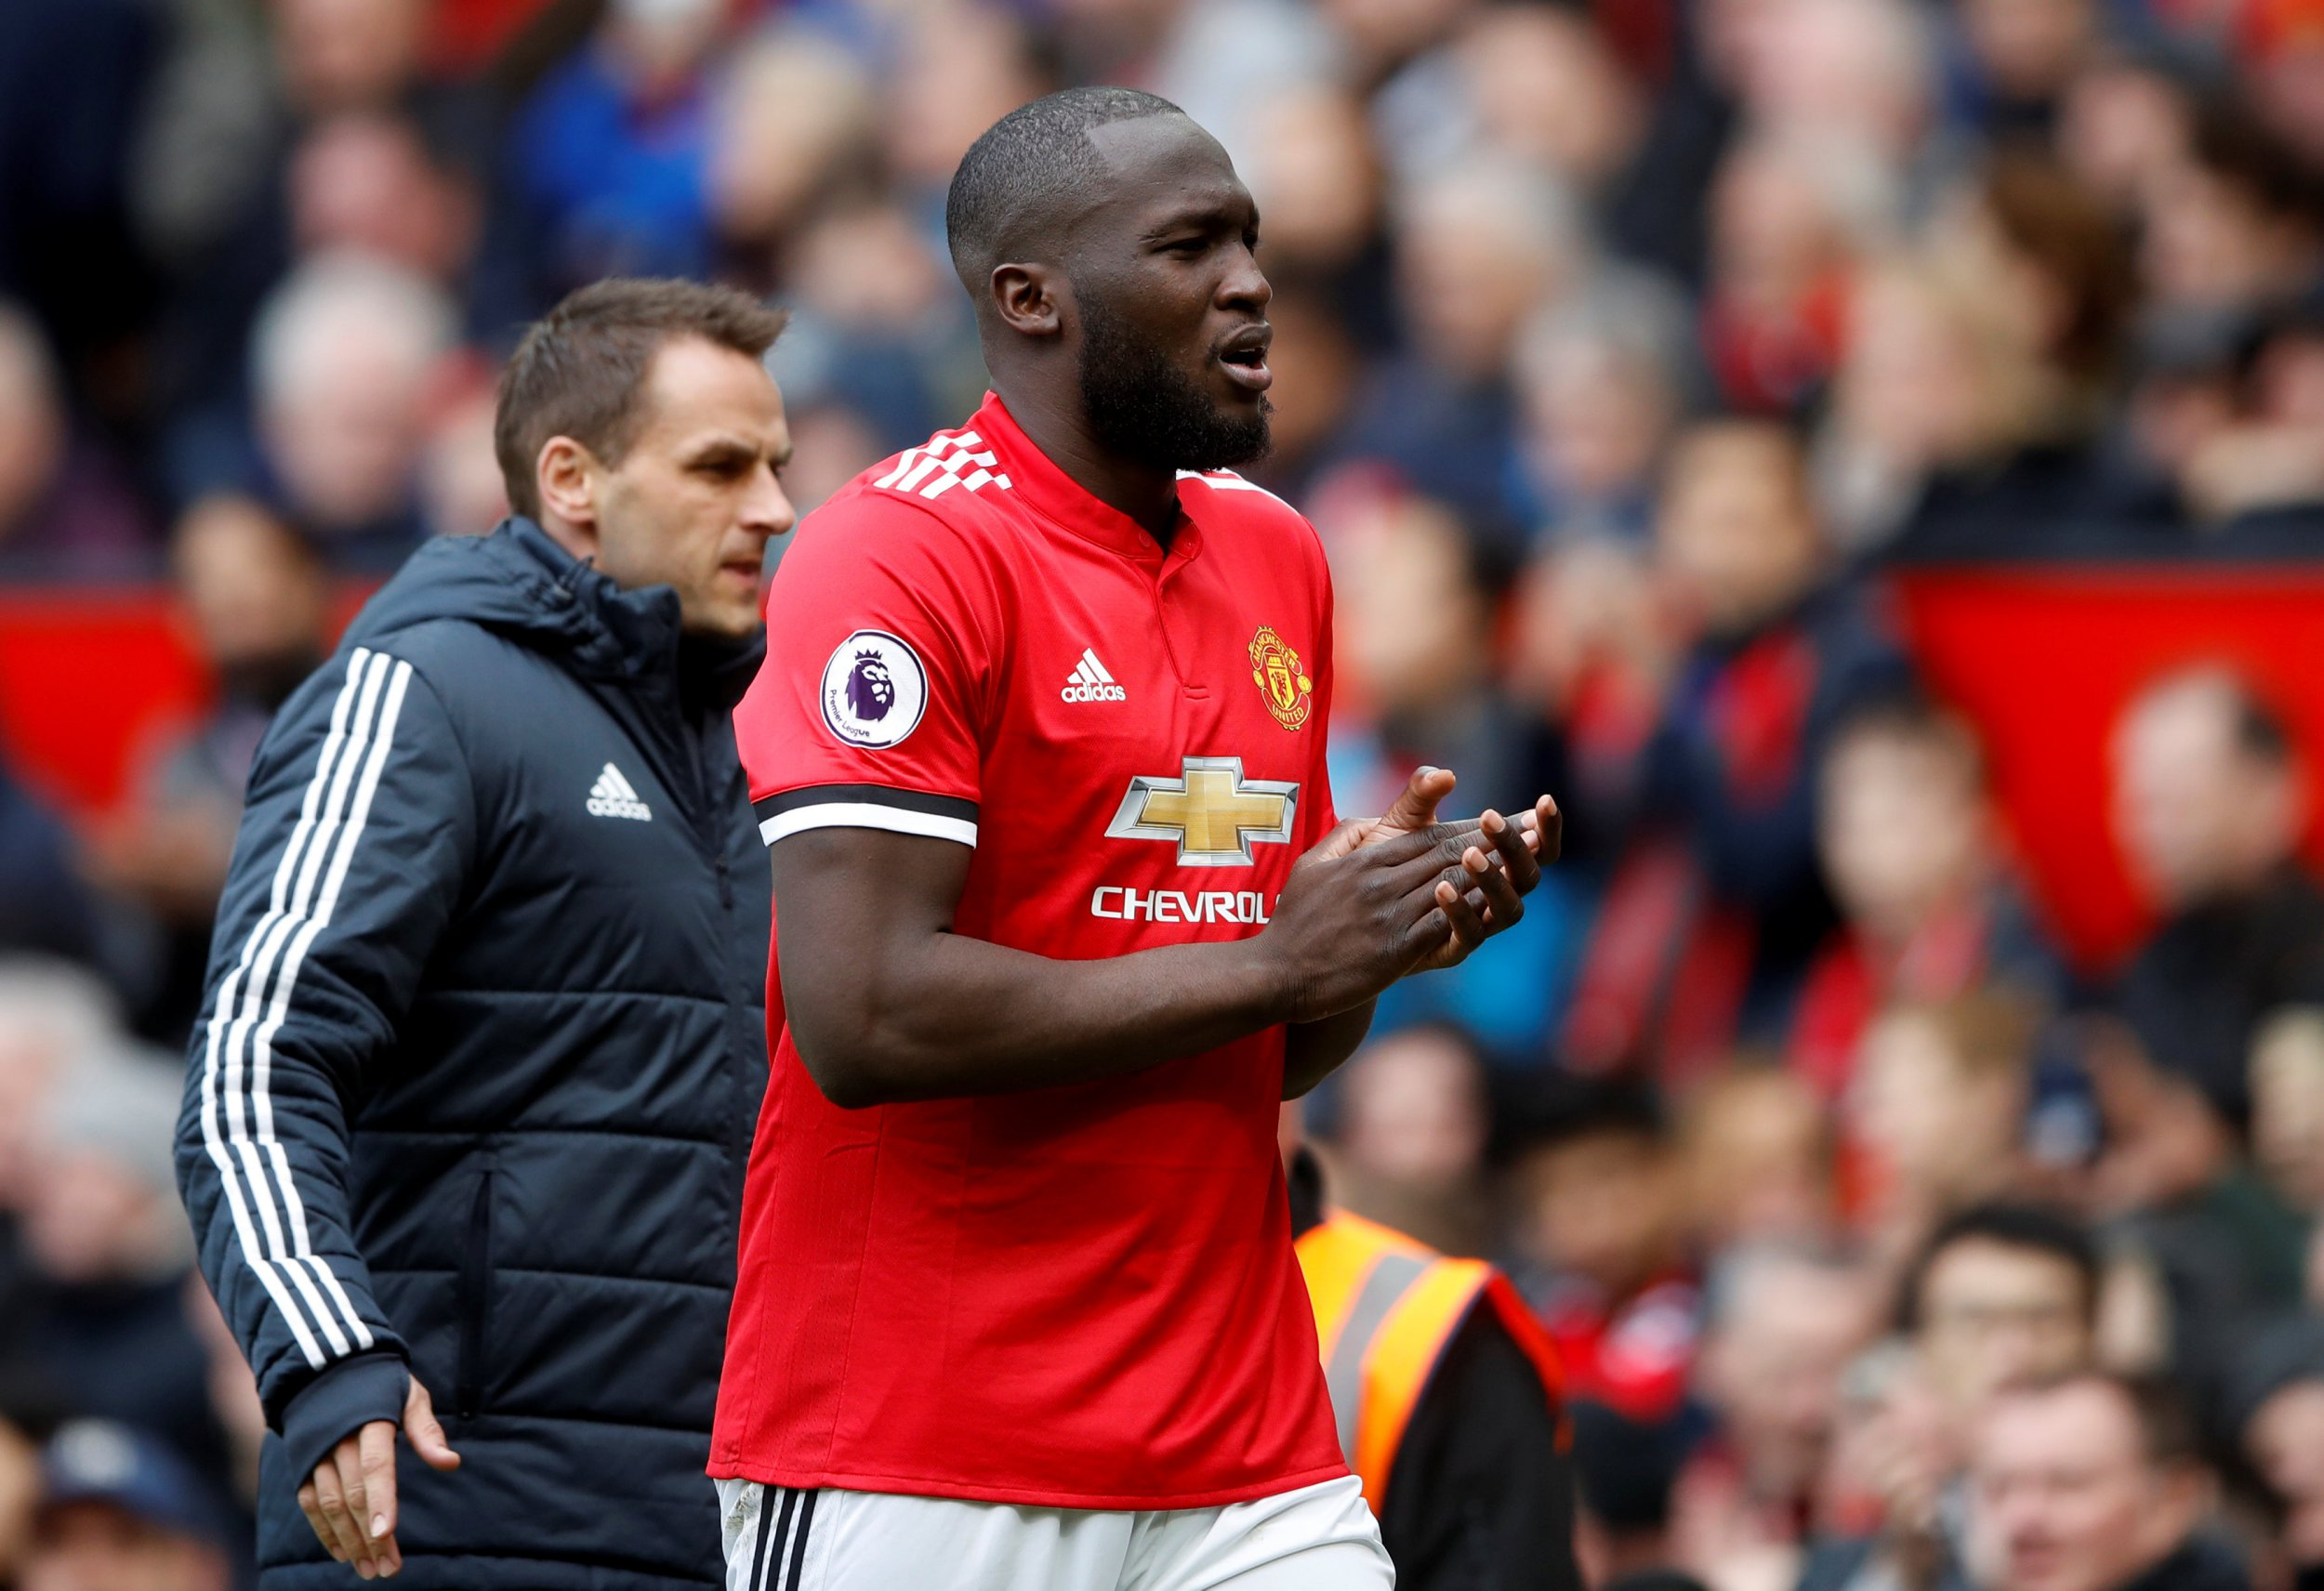 Romelu Lukaku gives injury update to Manchester United fans before FA Cup final against Chelsea